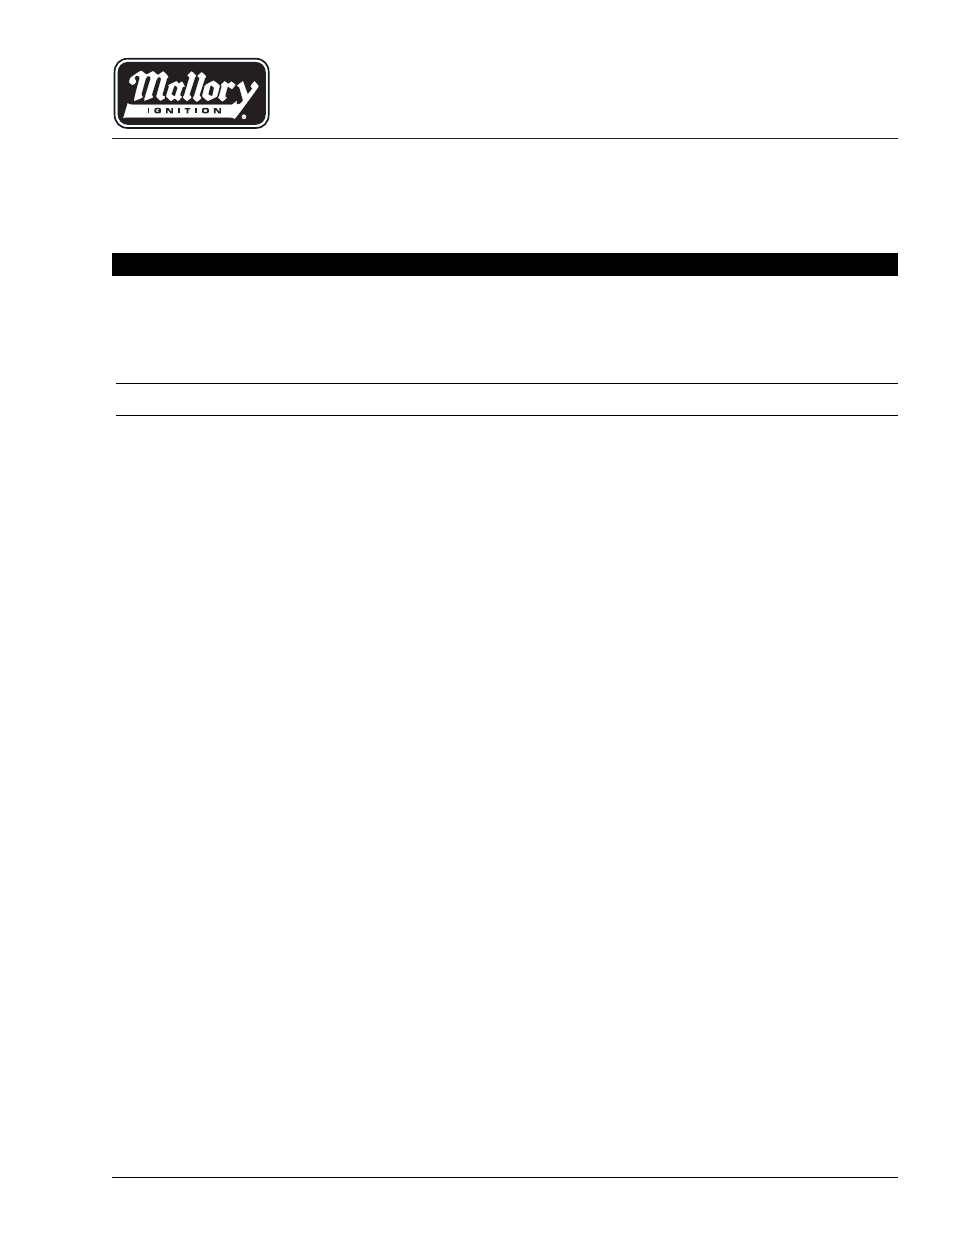 mallory ignition mallory unilite distributor page1 mallory ignition mallory unilite distributor user manual 13 mallory ignition wiring diagram at bayanpartner.co